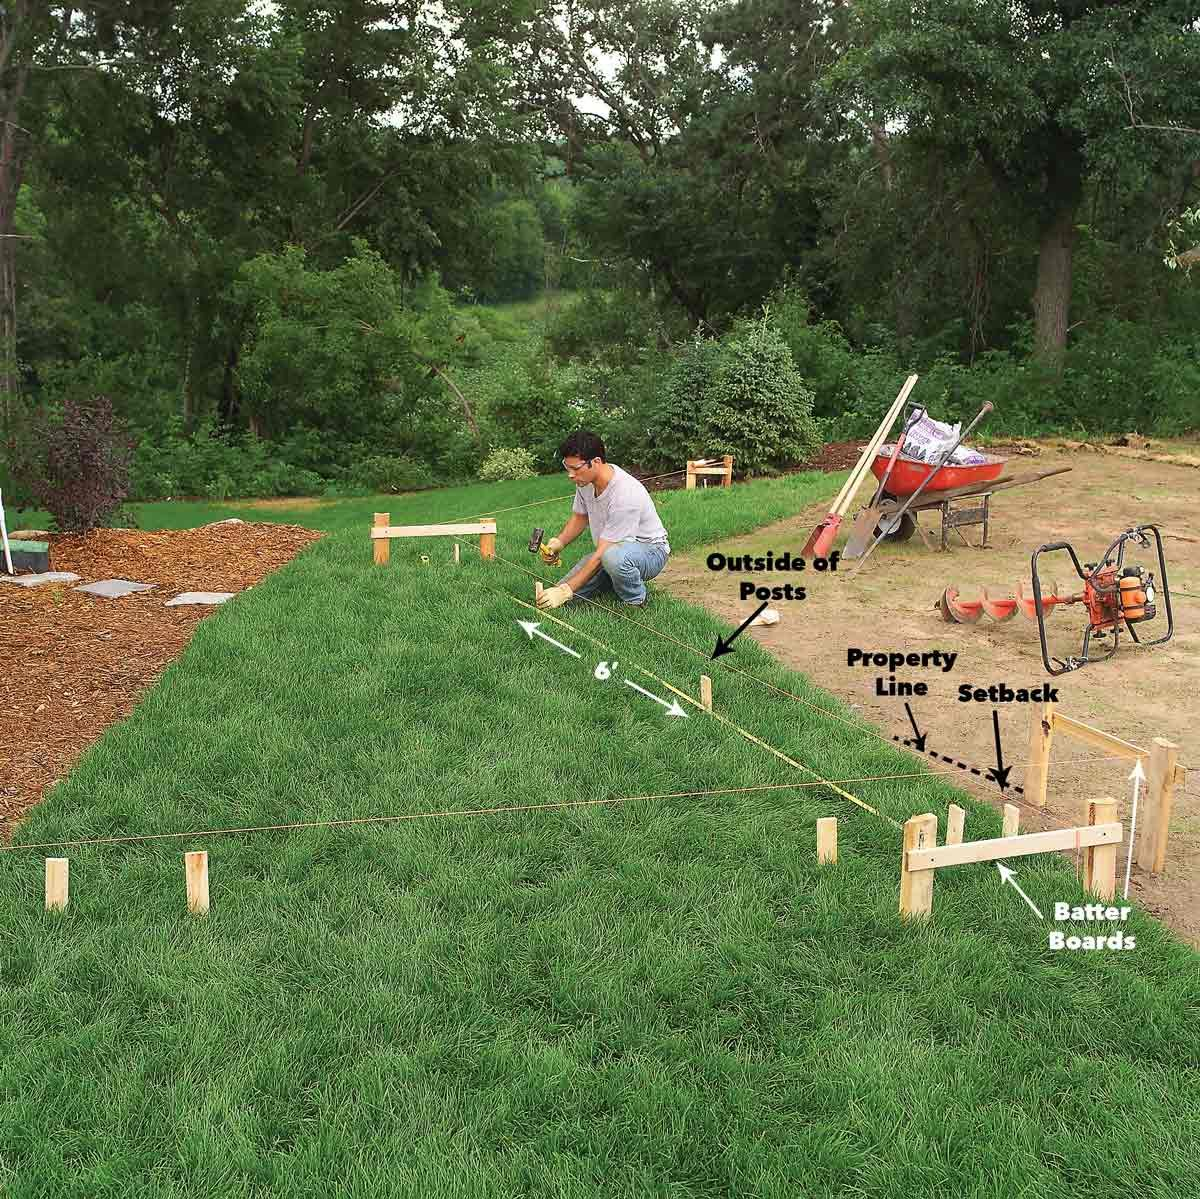 mark fence lines